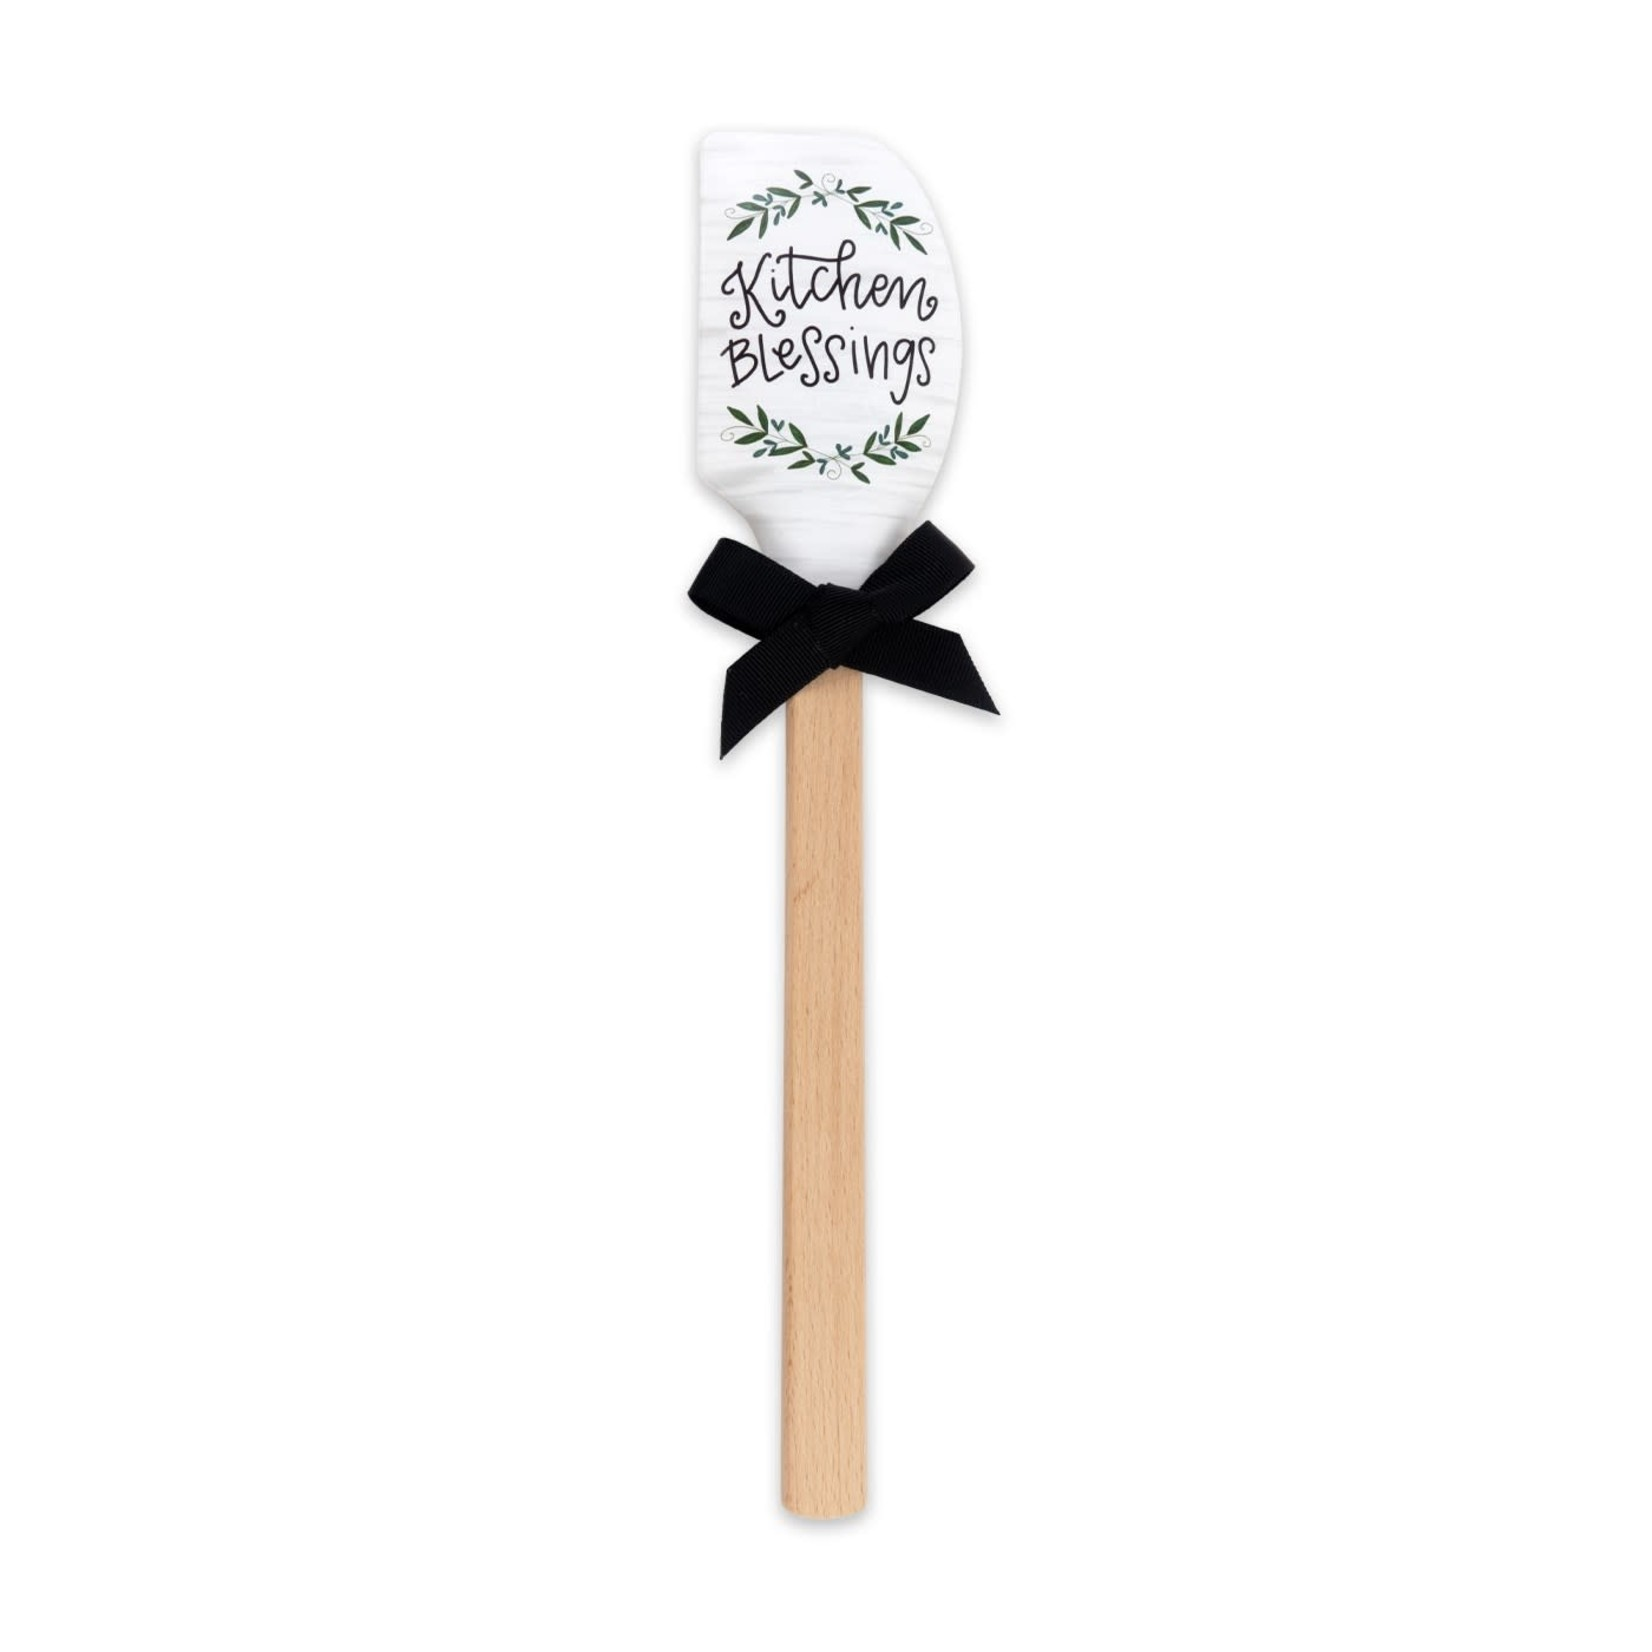 Brownlow Gifts Kitchen: Kitchen Blessings Spatula